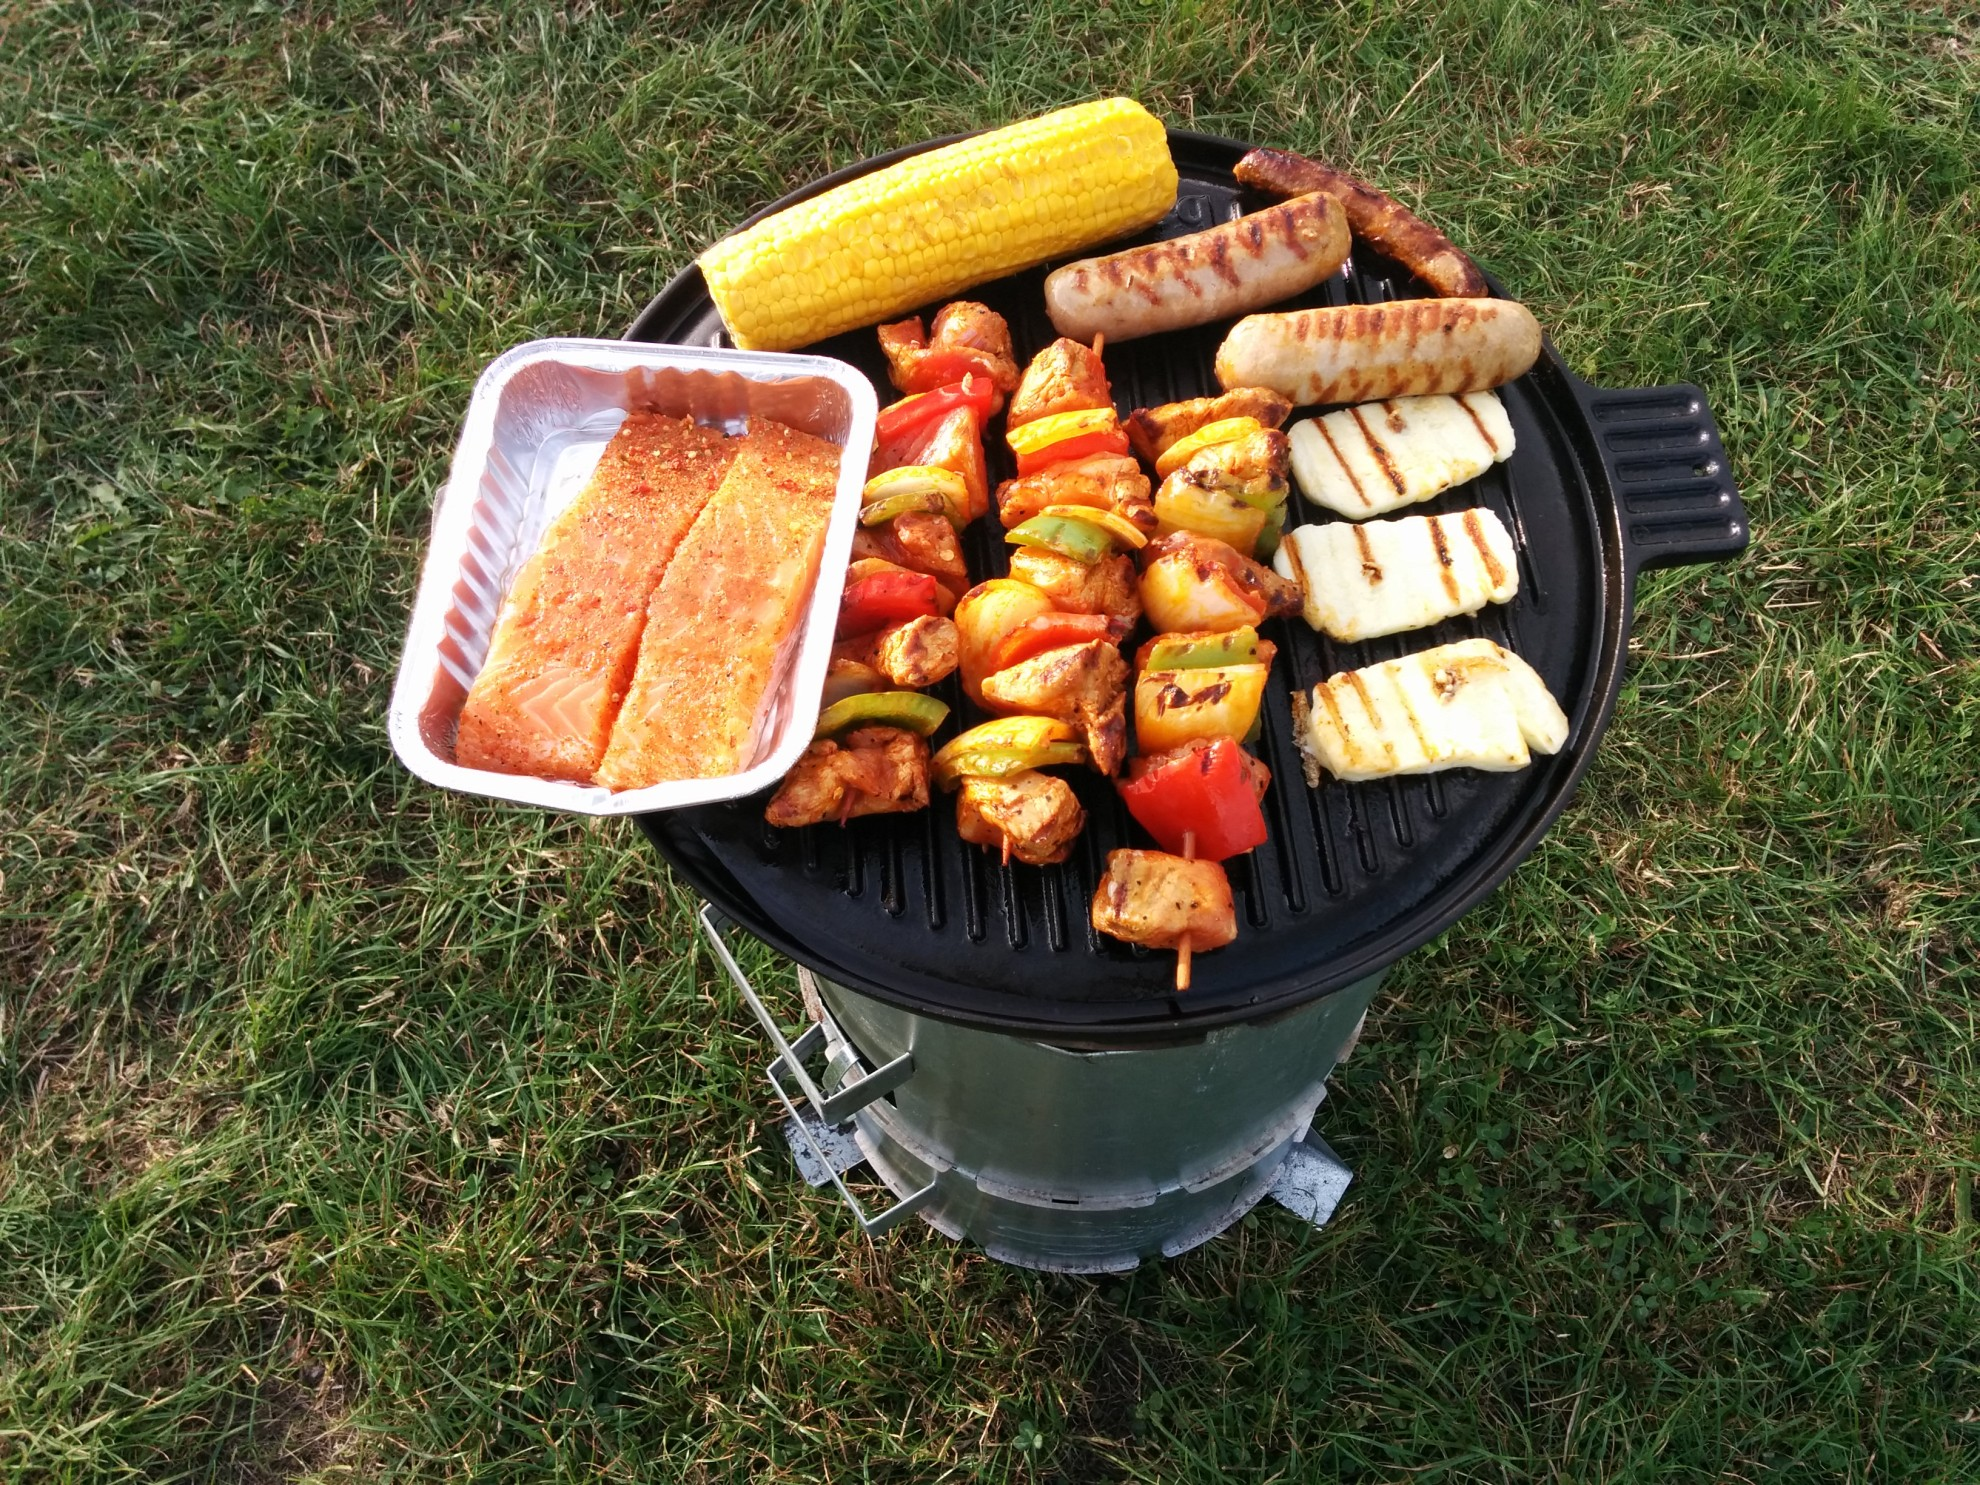 Grillen mal anders. (Foto: GloW efficiency off-grid)